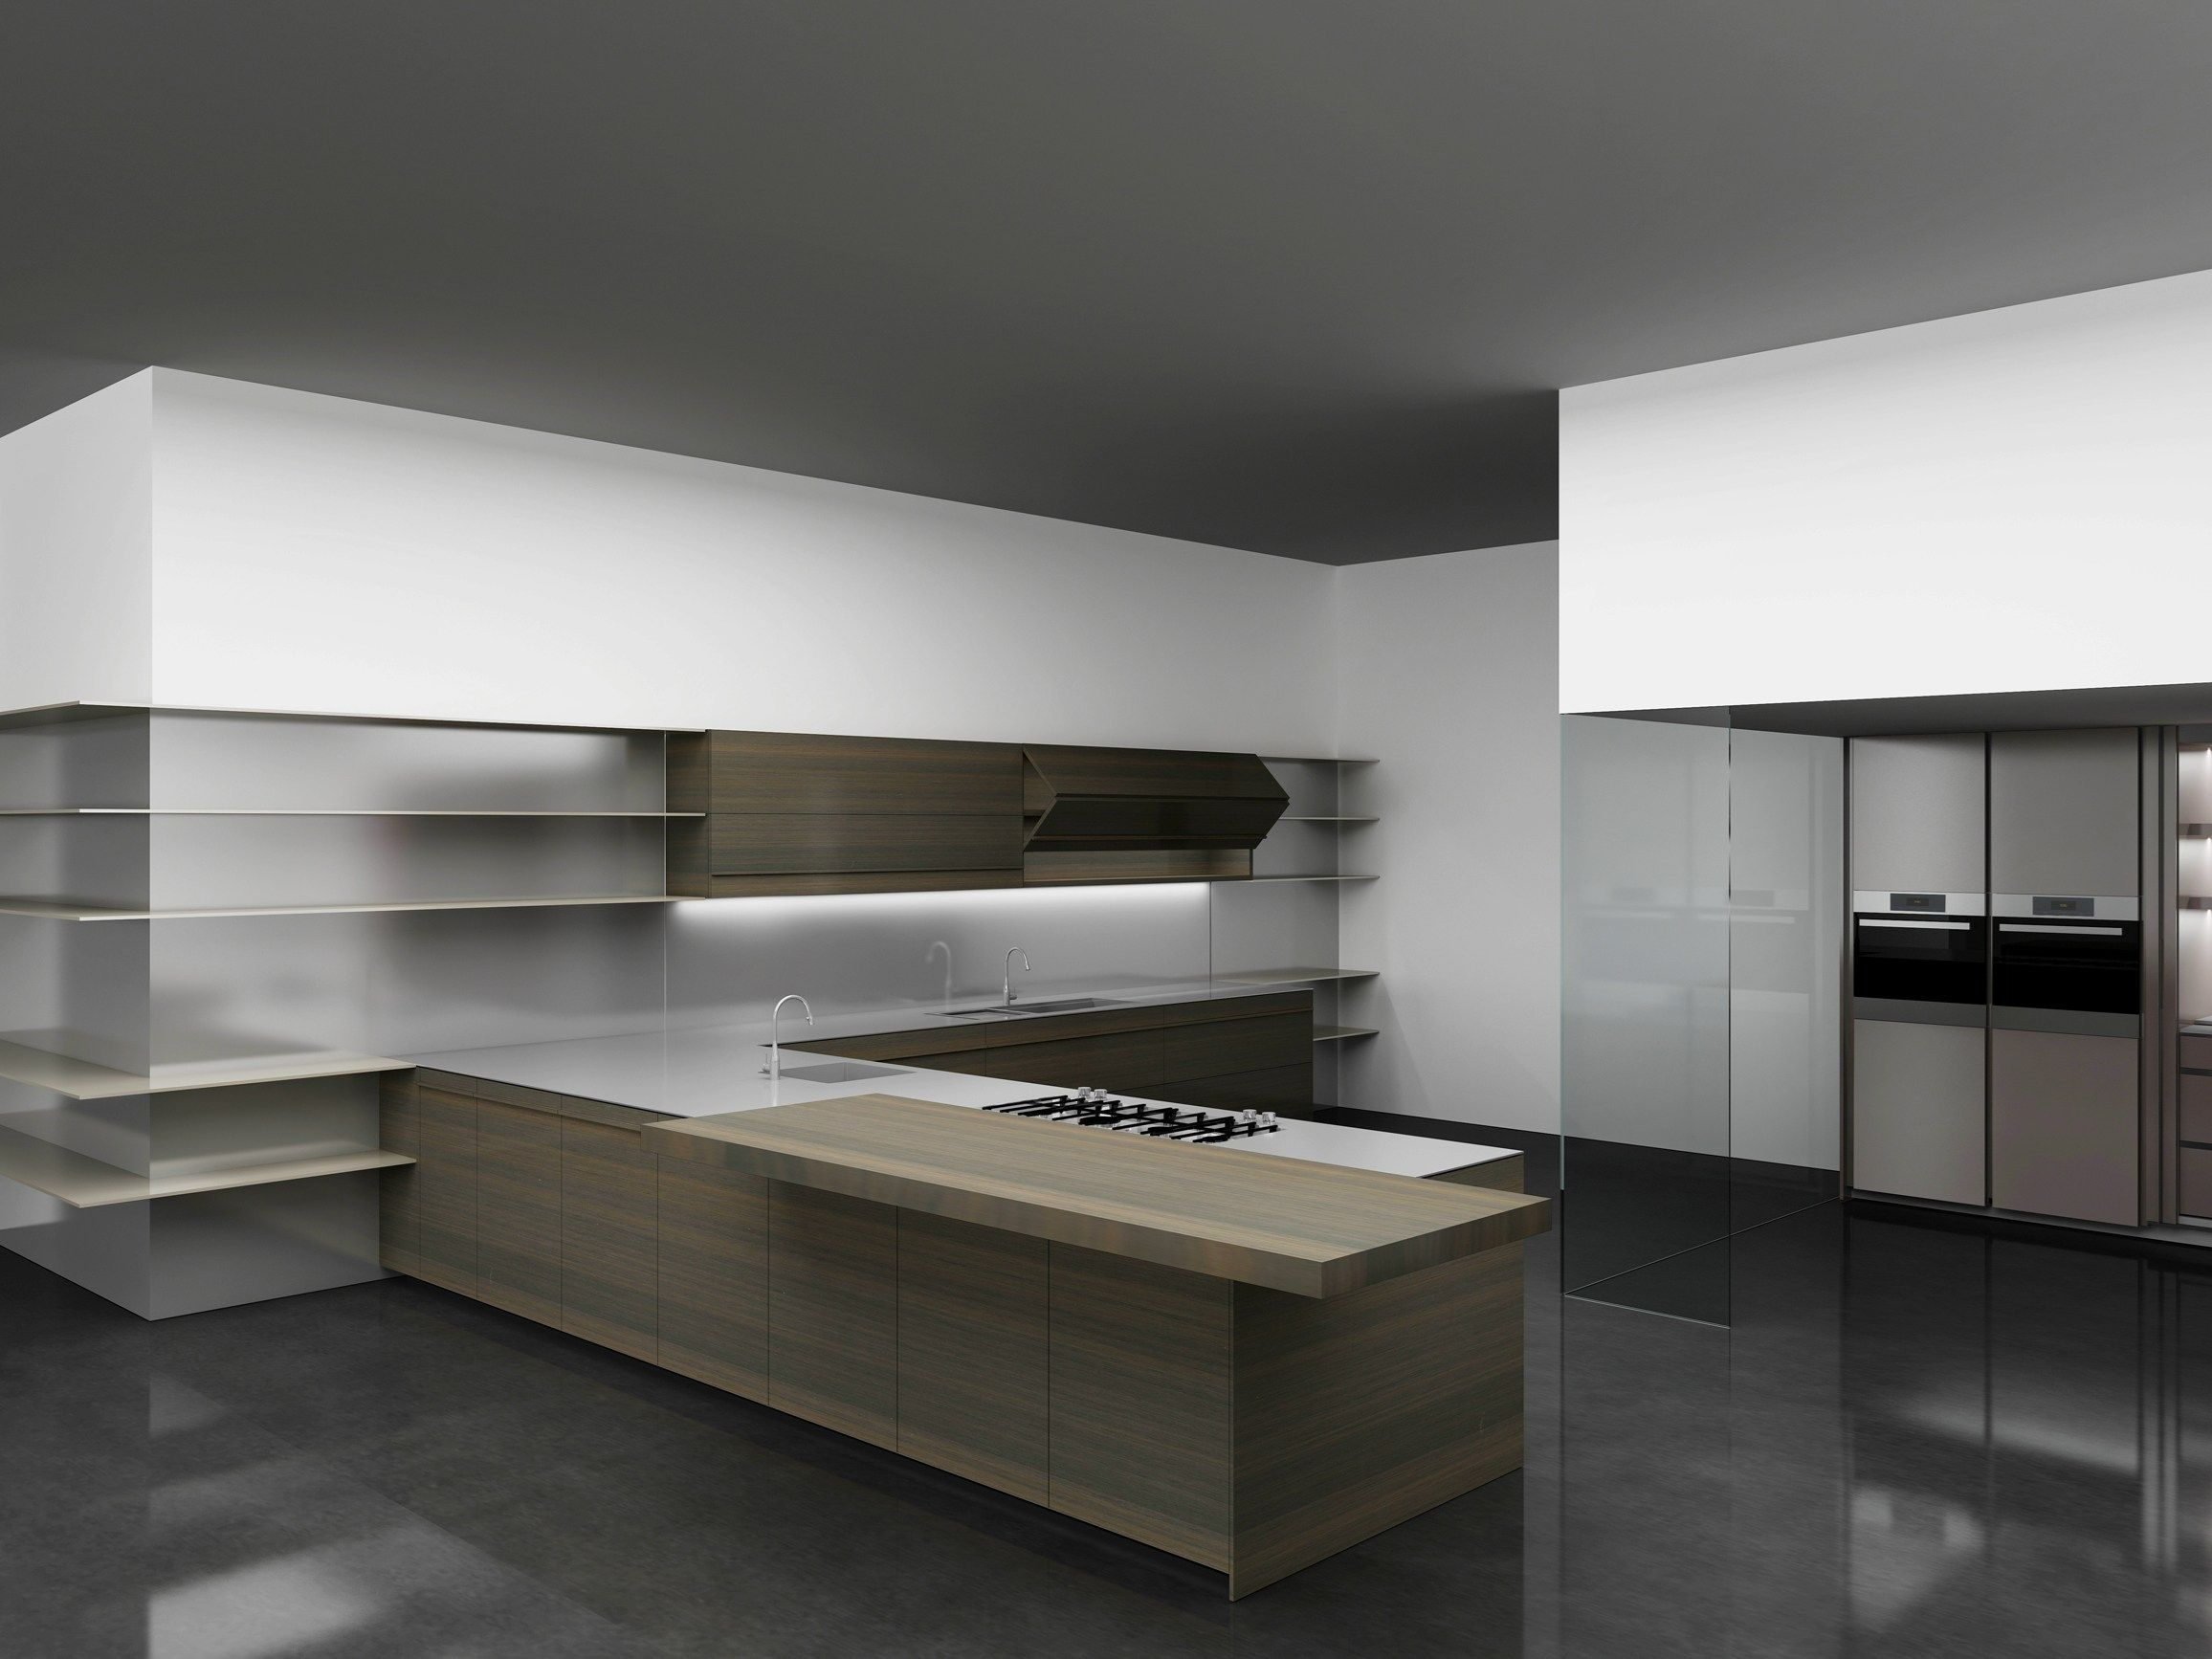 Cucina Dada Molteni Kitchen With Integrated Handles Vela By Dada Design Dante